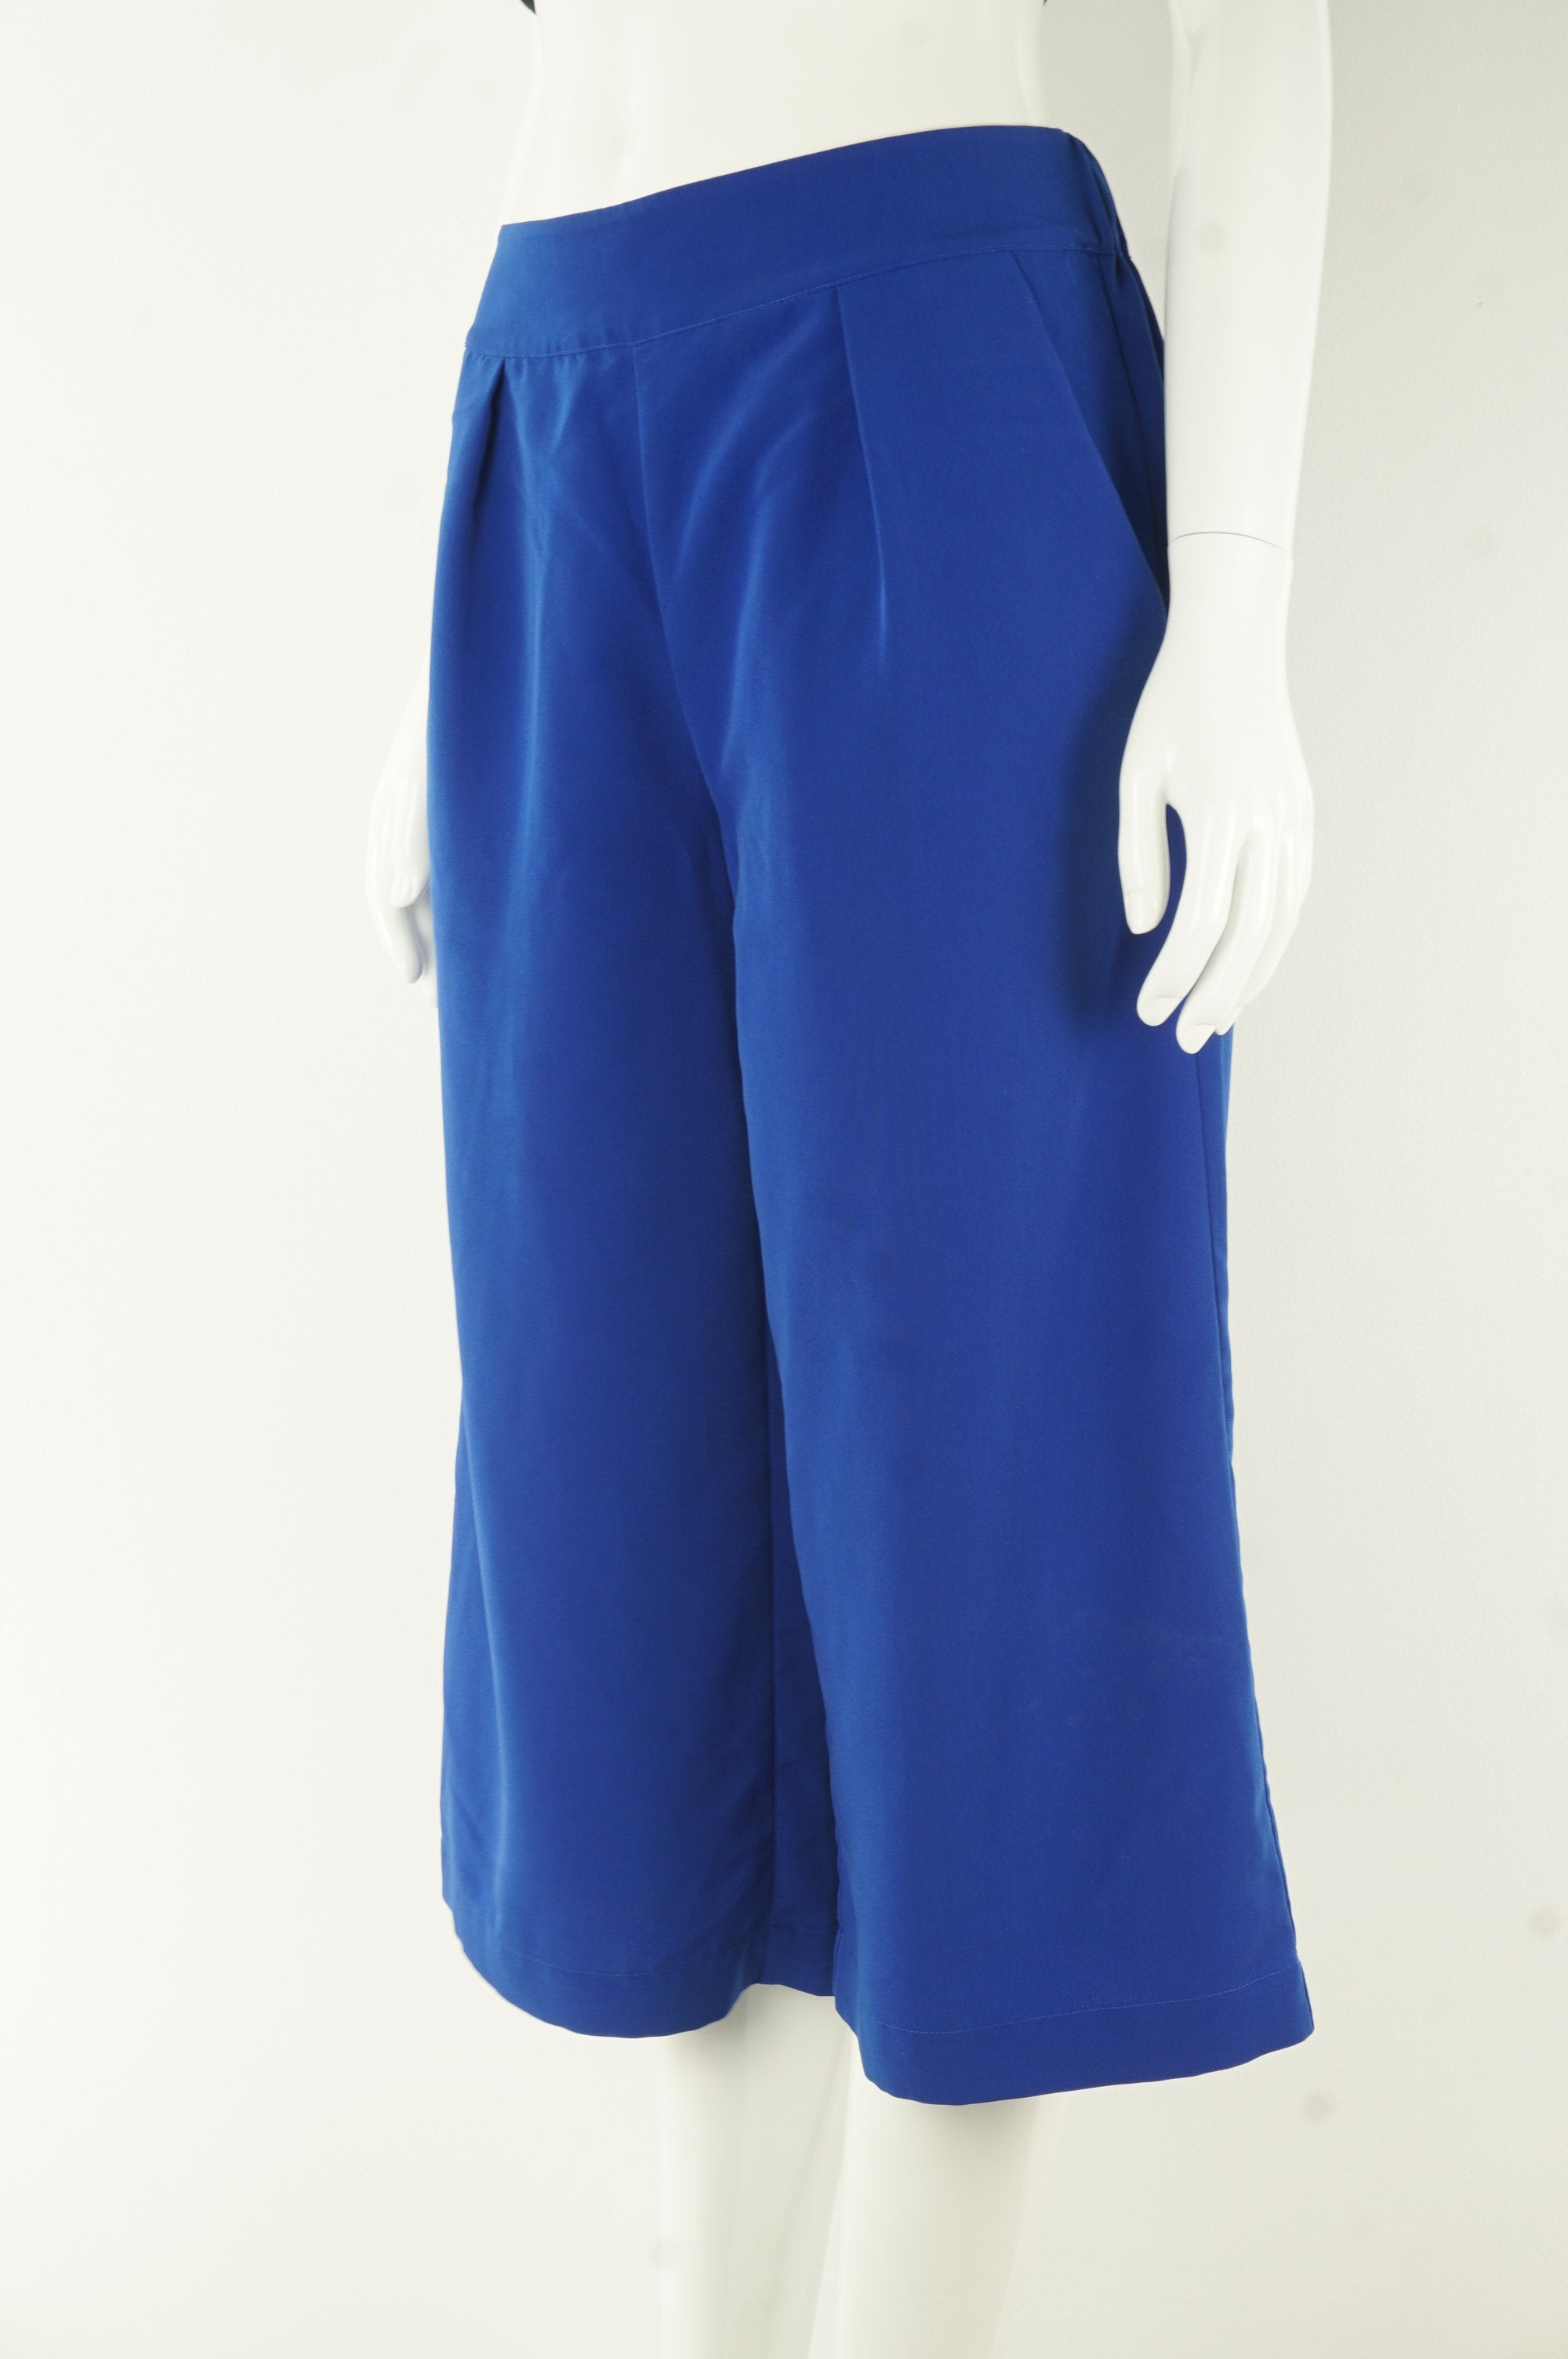 H Halston Cropped Wide Legged Pants, Casual or formal, you call. Comfort is guaranteed!, Blue, 100% polyester, women's Pants, women's Blue Pants, H Halston women's Pants, women's cropped wide-legged capri pants, women's comfortable loose capri pants